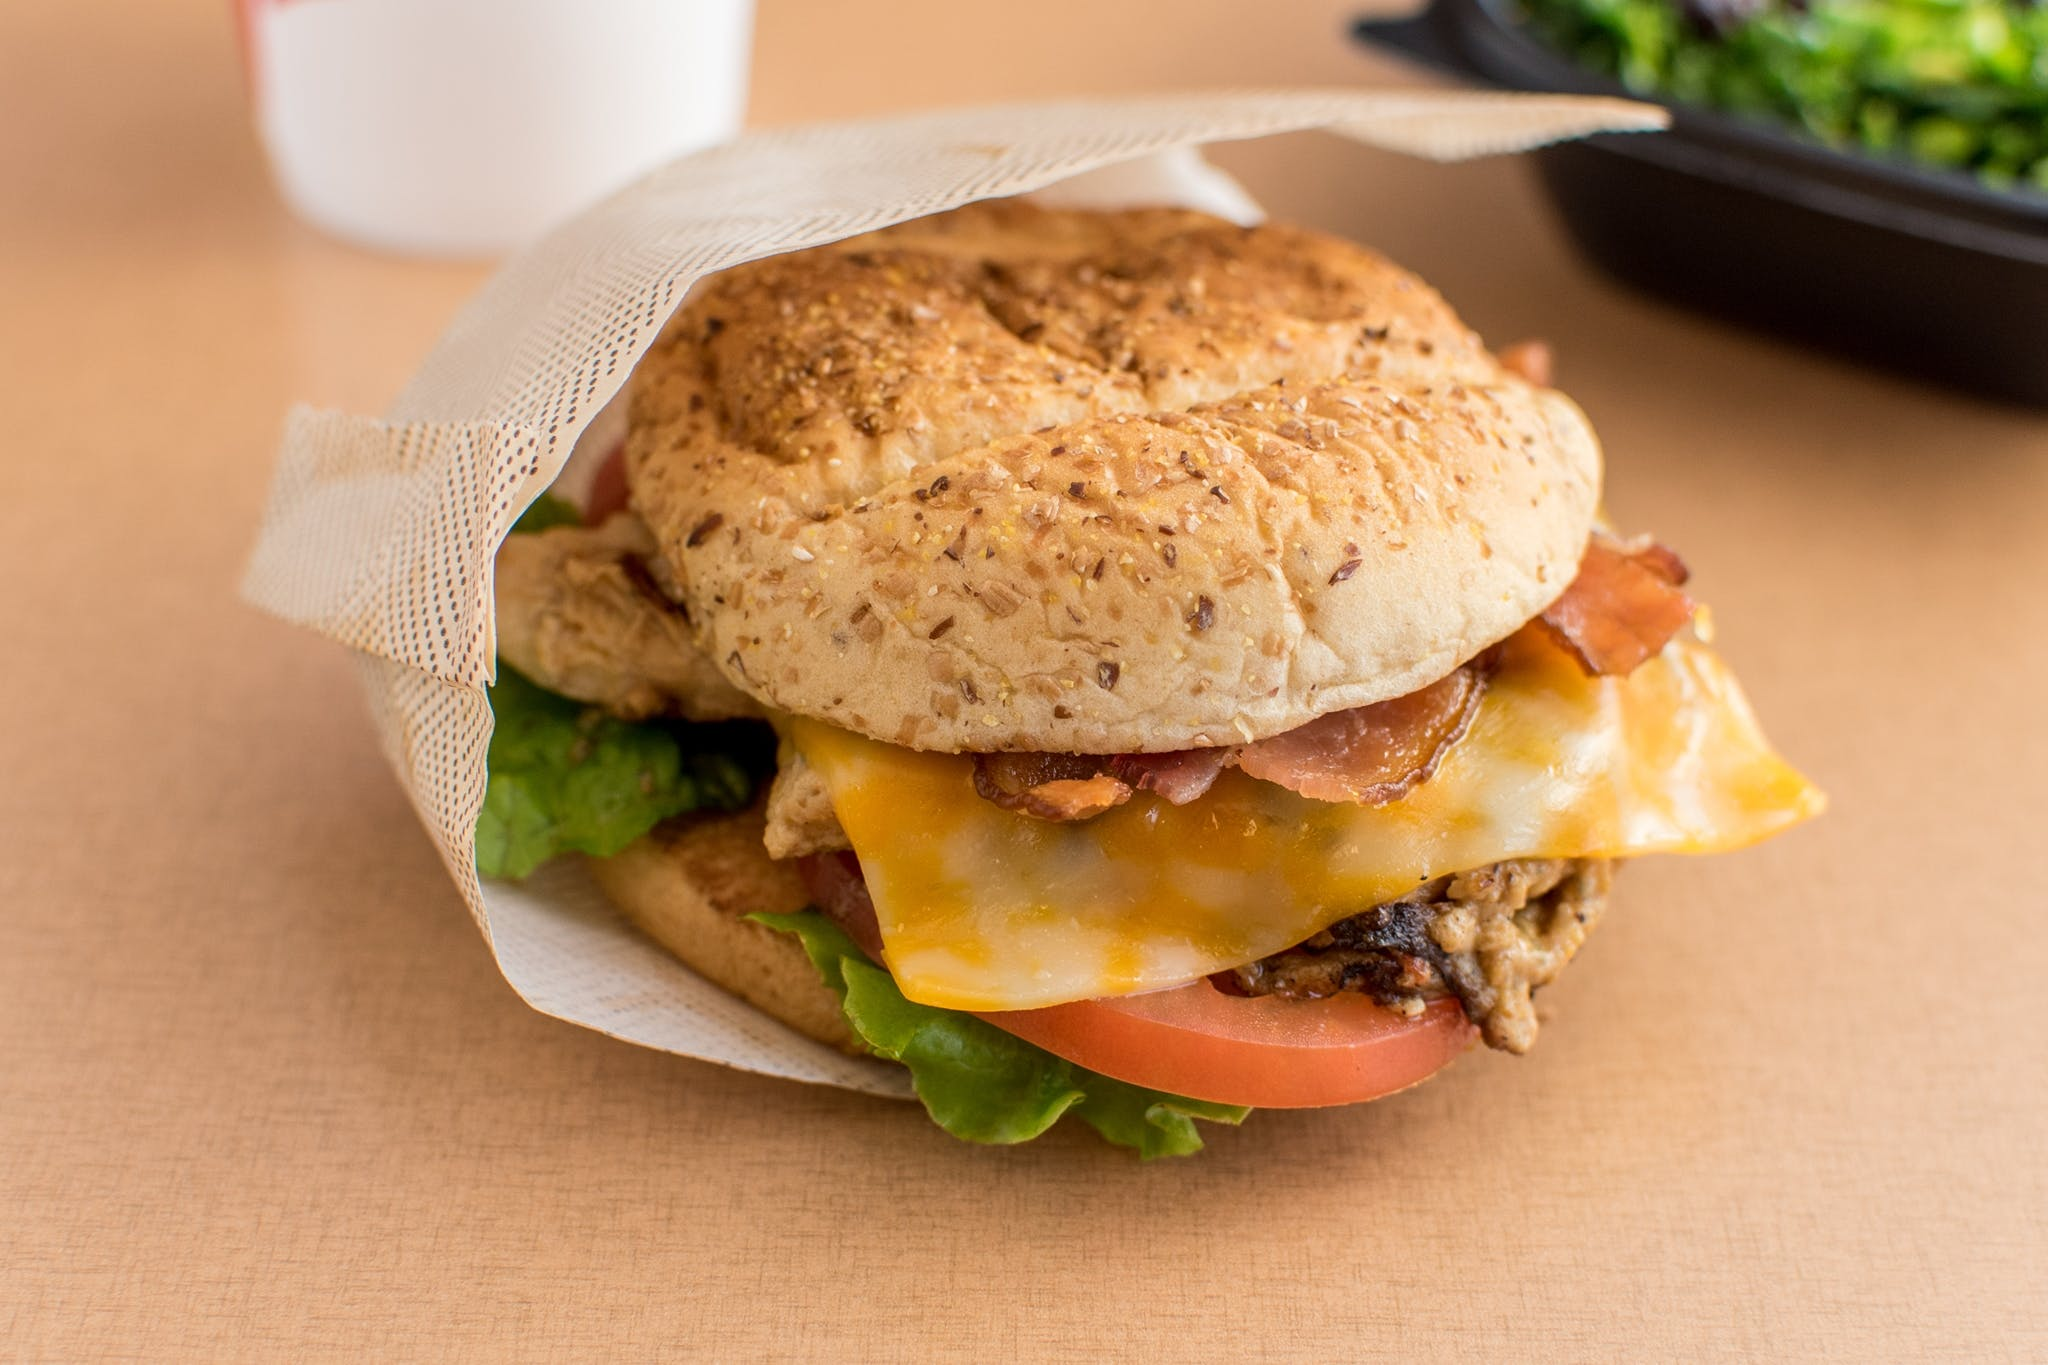 Grilled Chicken Club Sandwich w/ Cheese from Chick Fil A - Kalamazoo in Portage, MI